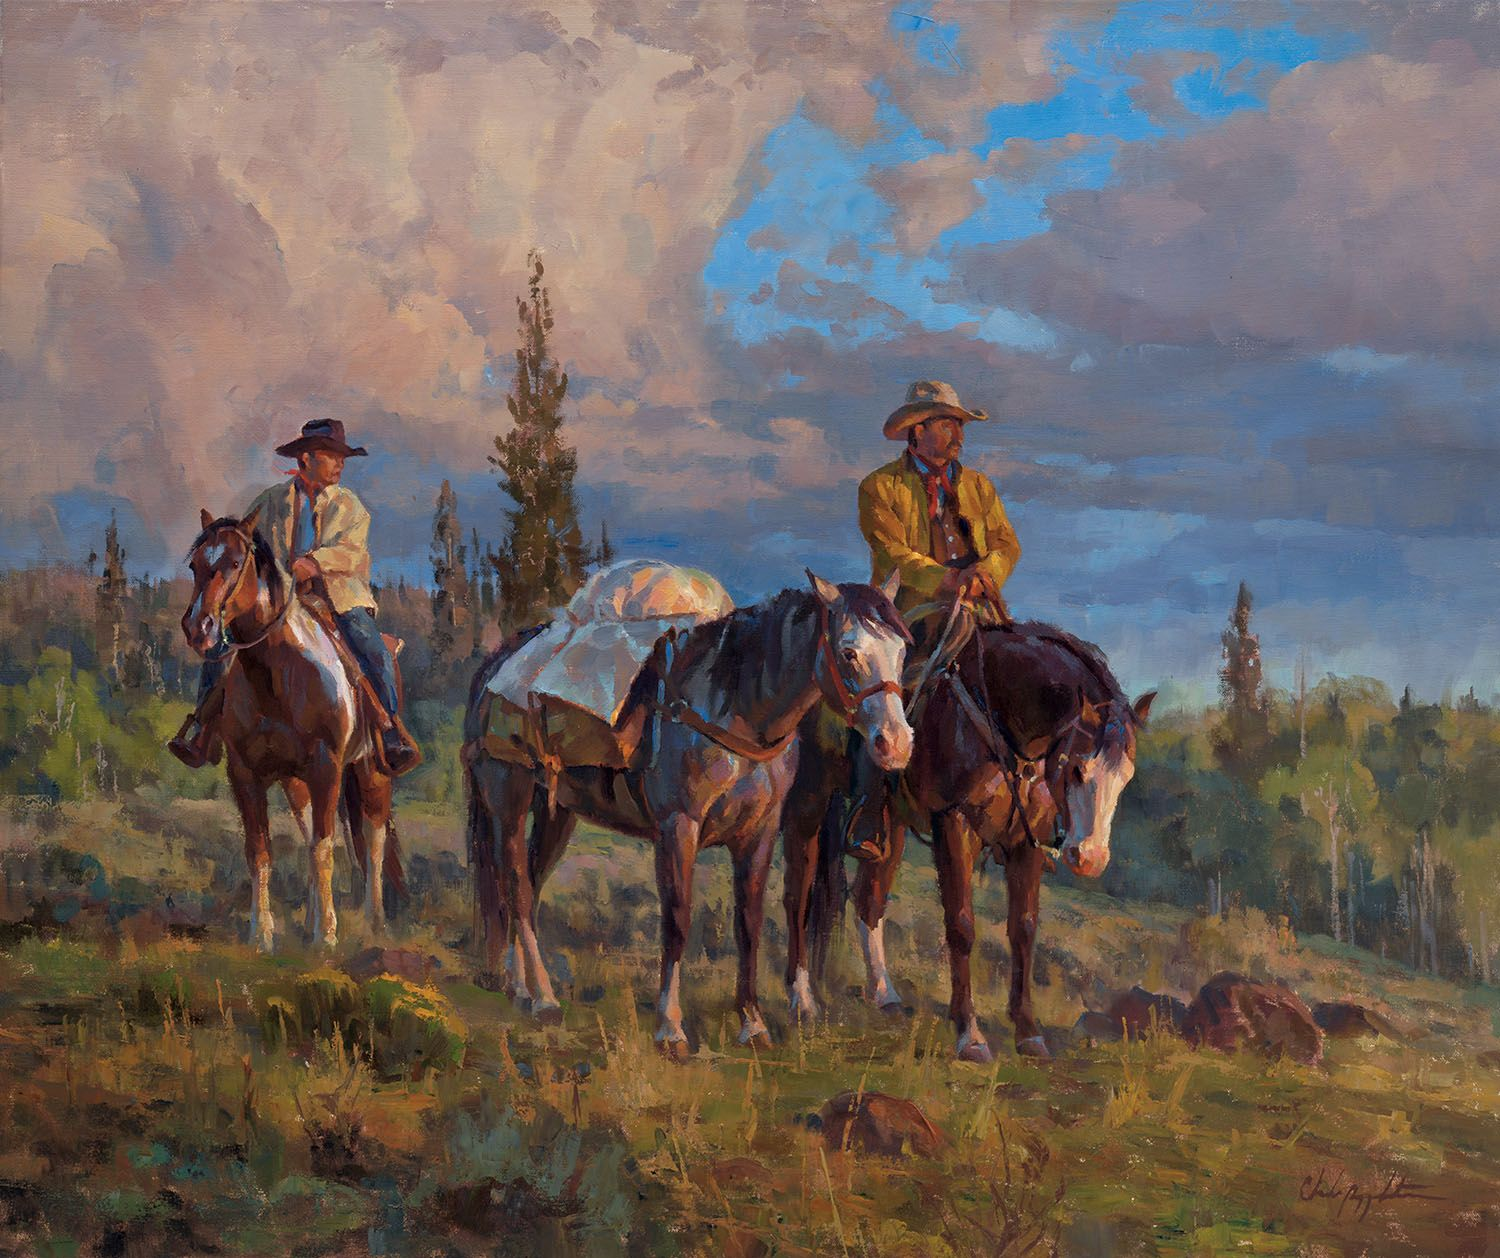 Men Humbled Chad Poppleton. Working Horses Cowboy Western Oil Painting